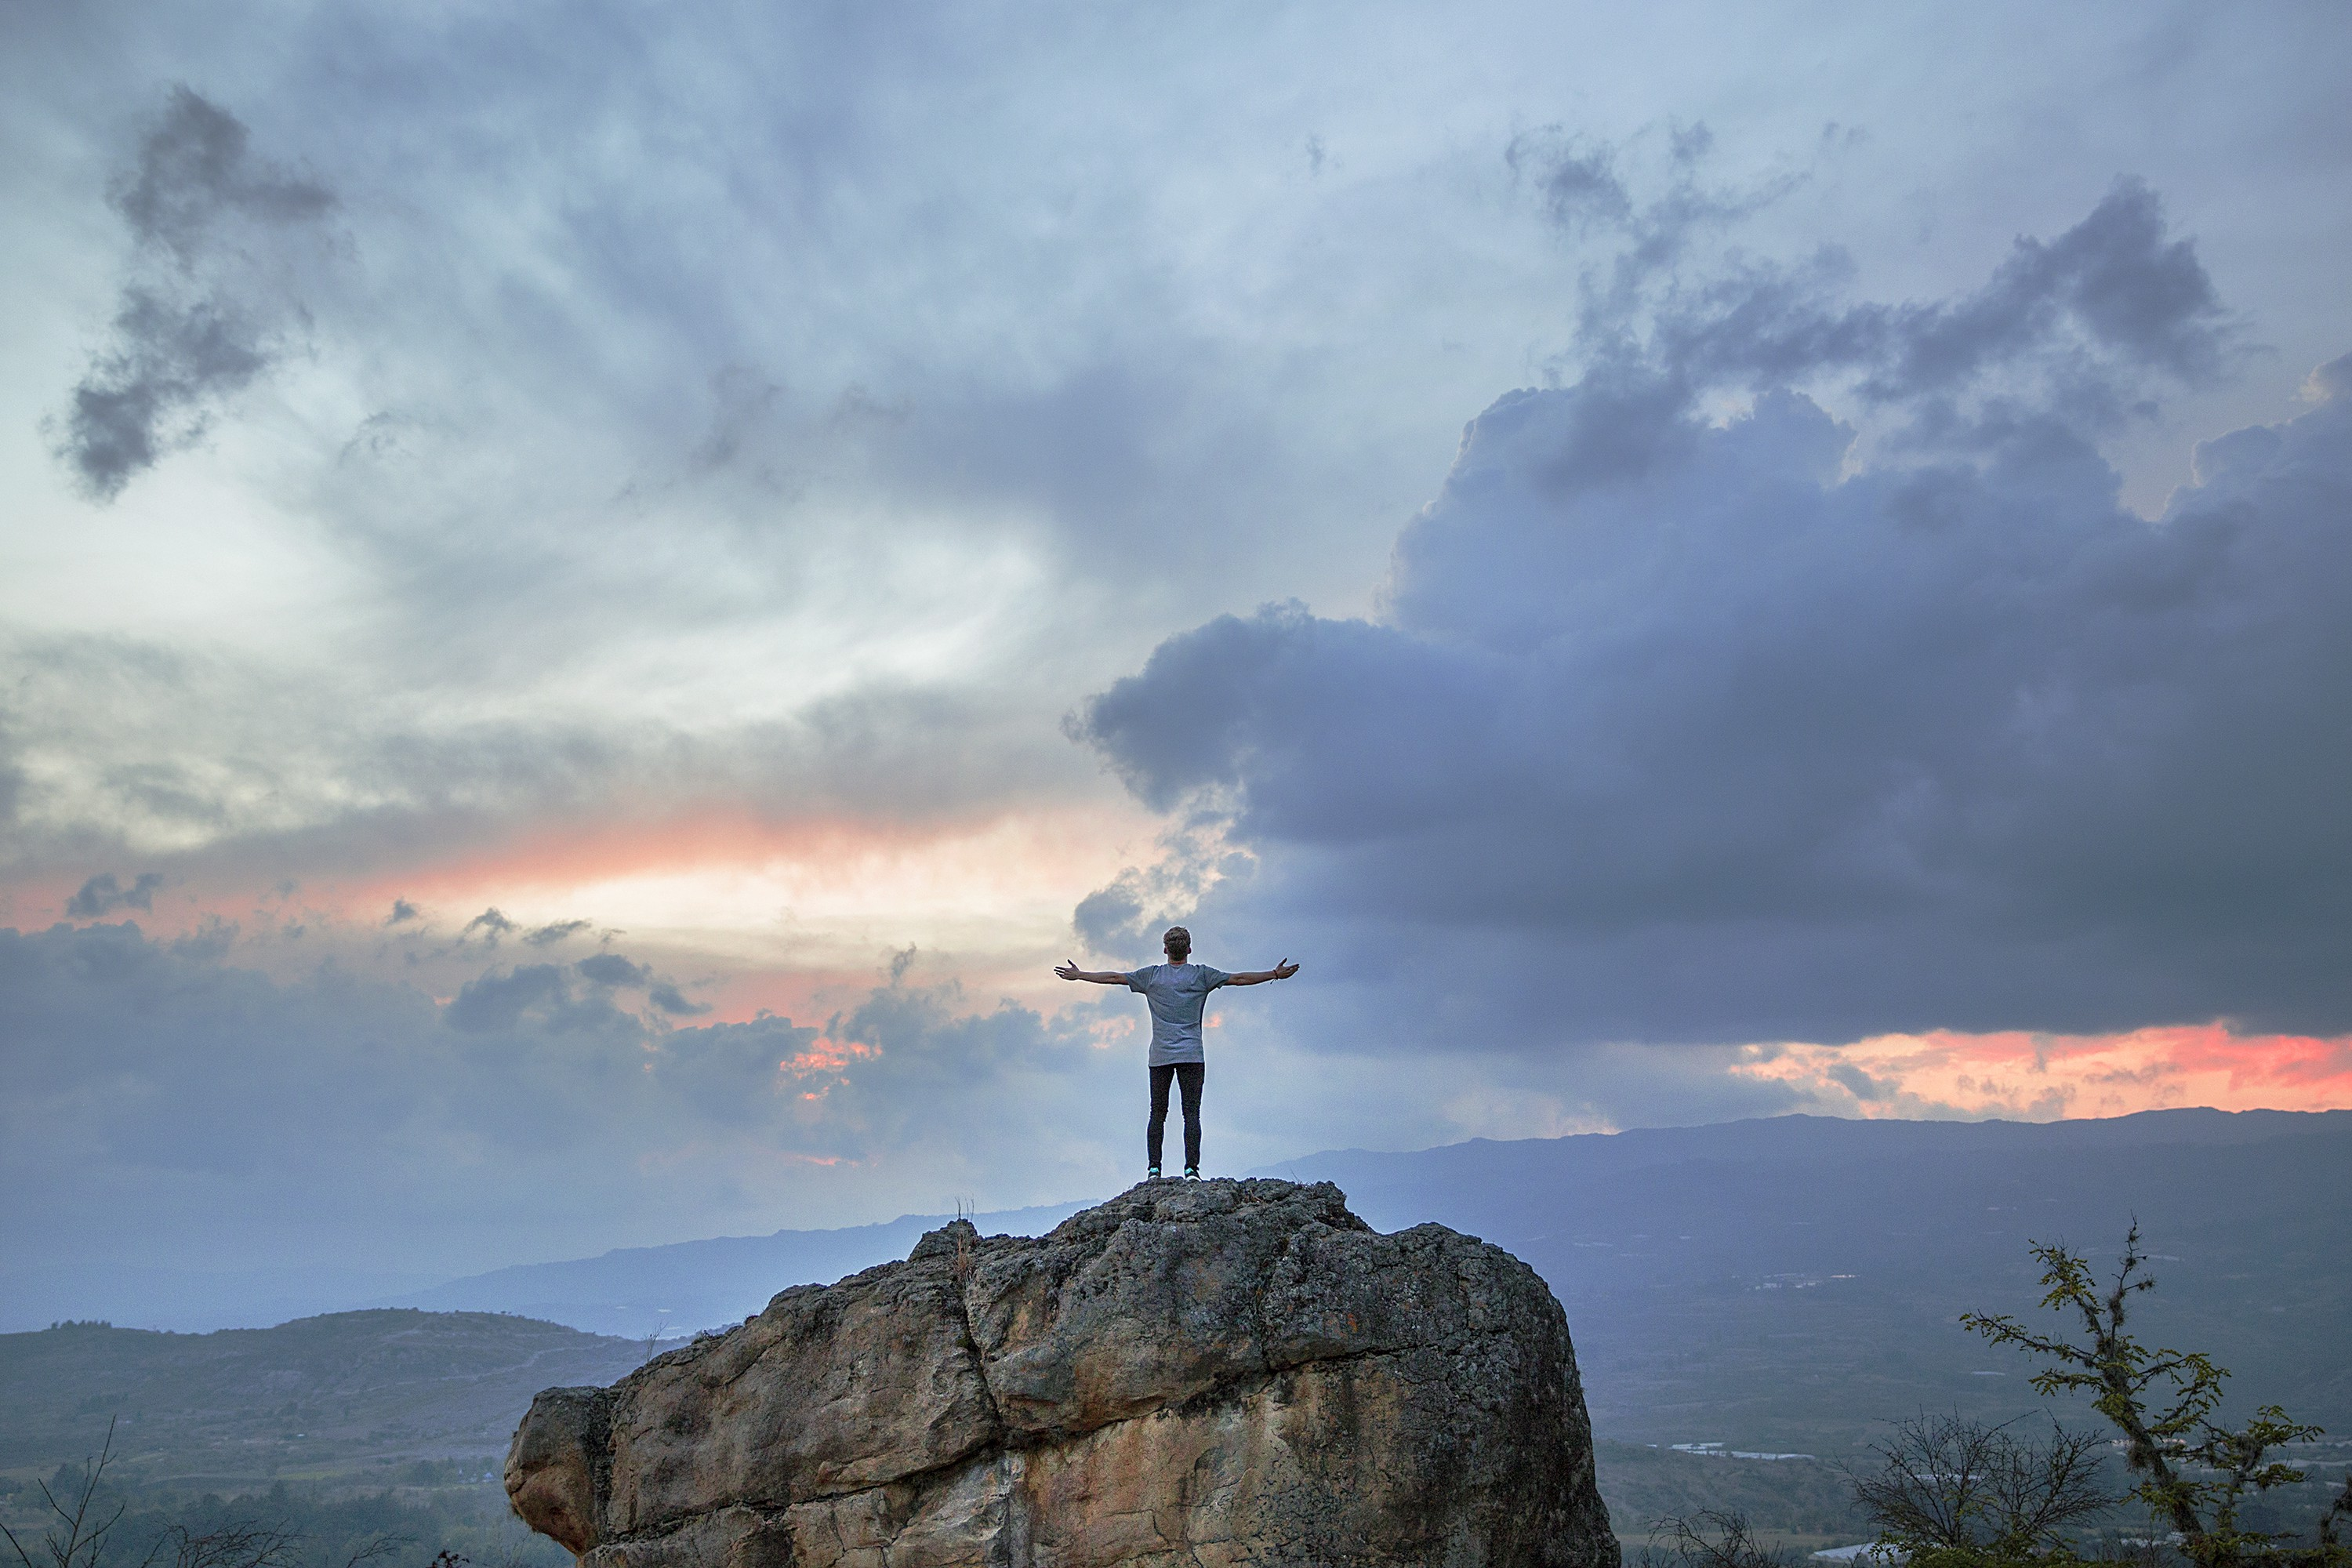 A man stands on top of a rock with outspread arms, gazing out into a cloudy sunset